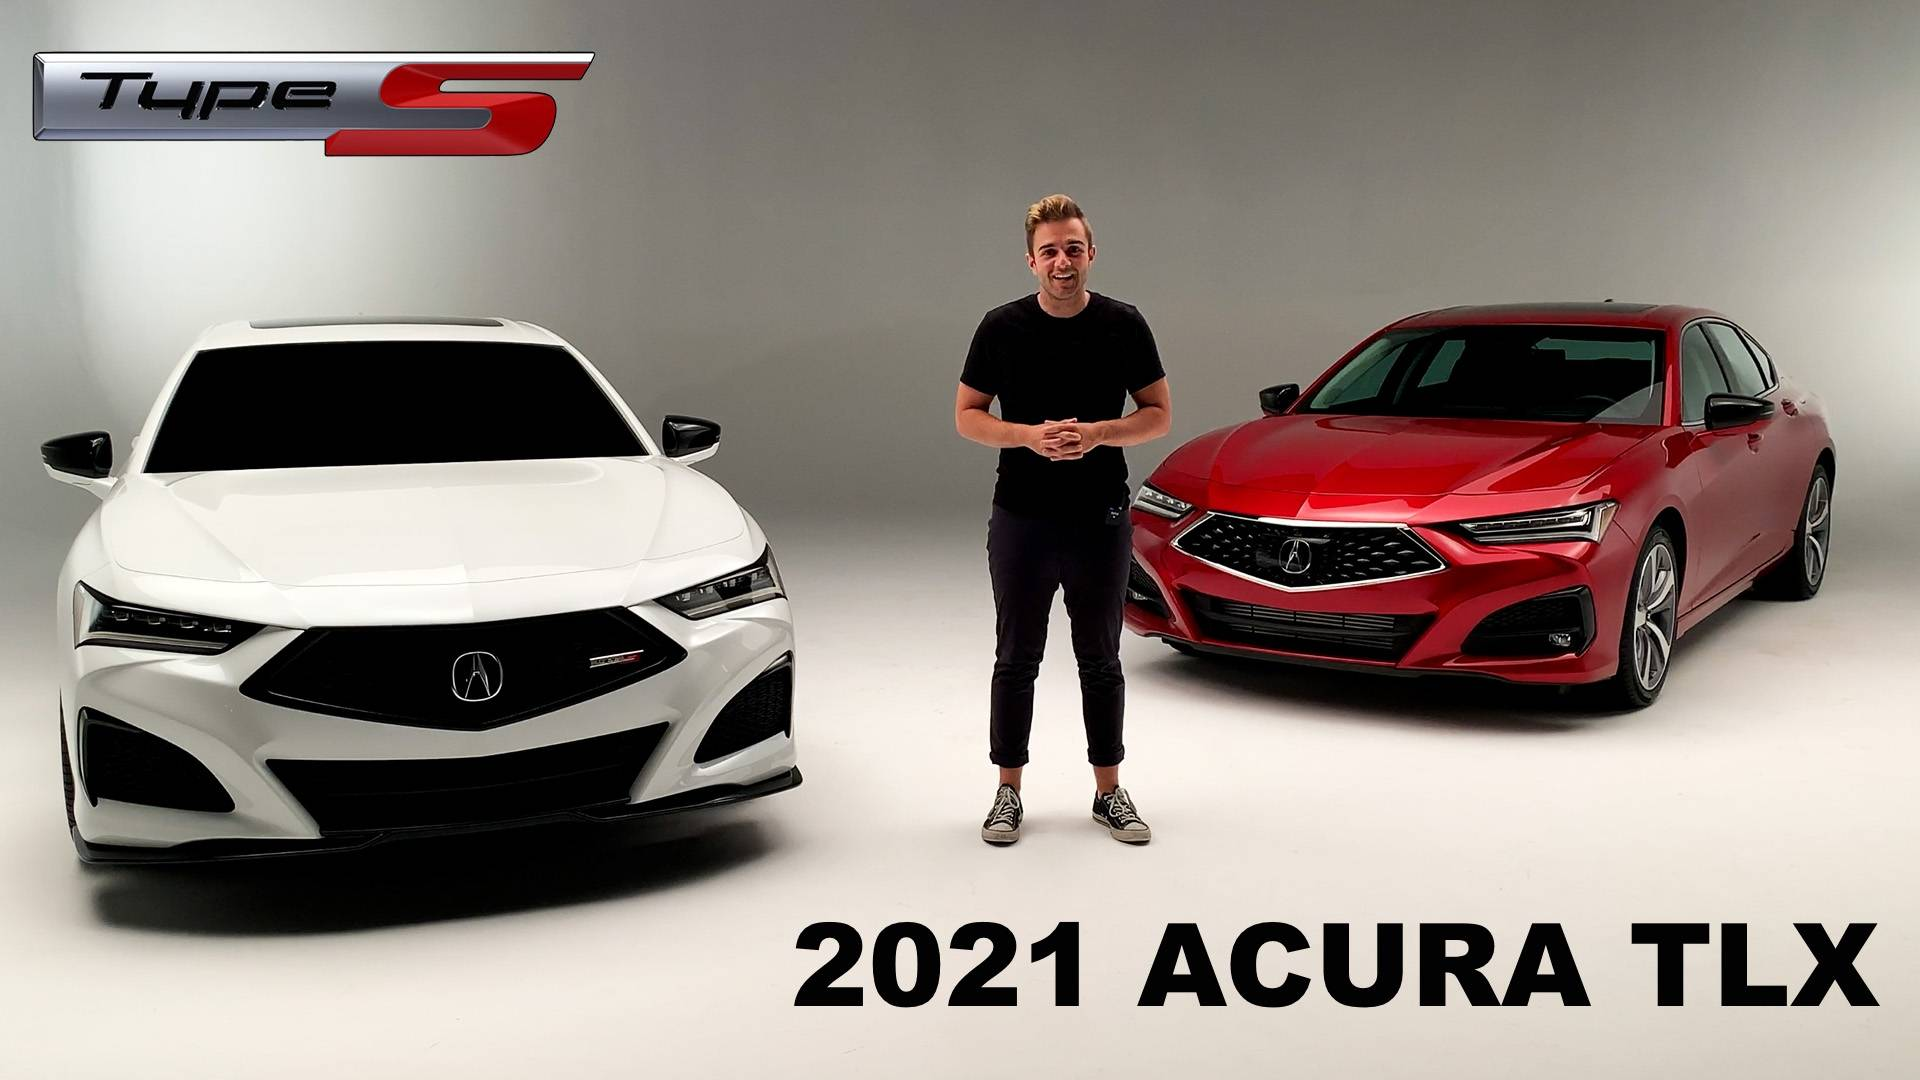 First Look See The 2021 Acura TLX Type S Up Close On Video 1920x1080